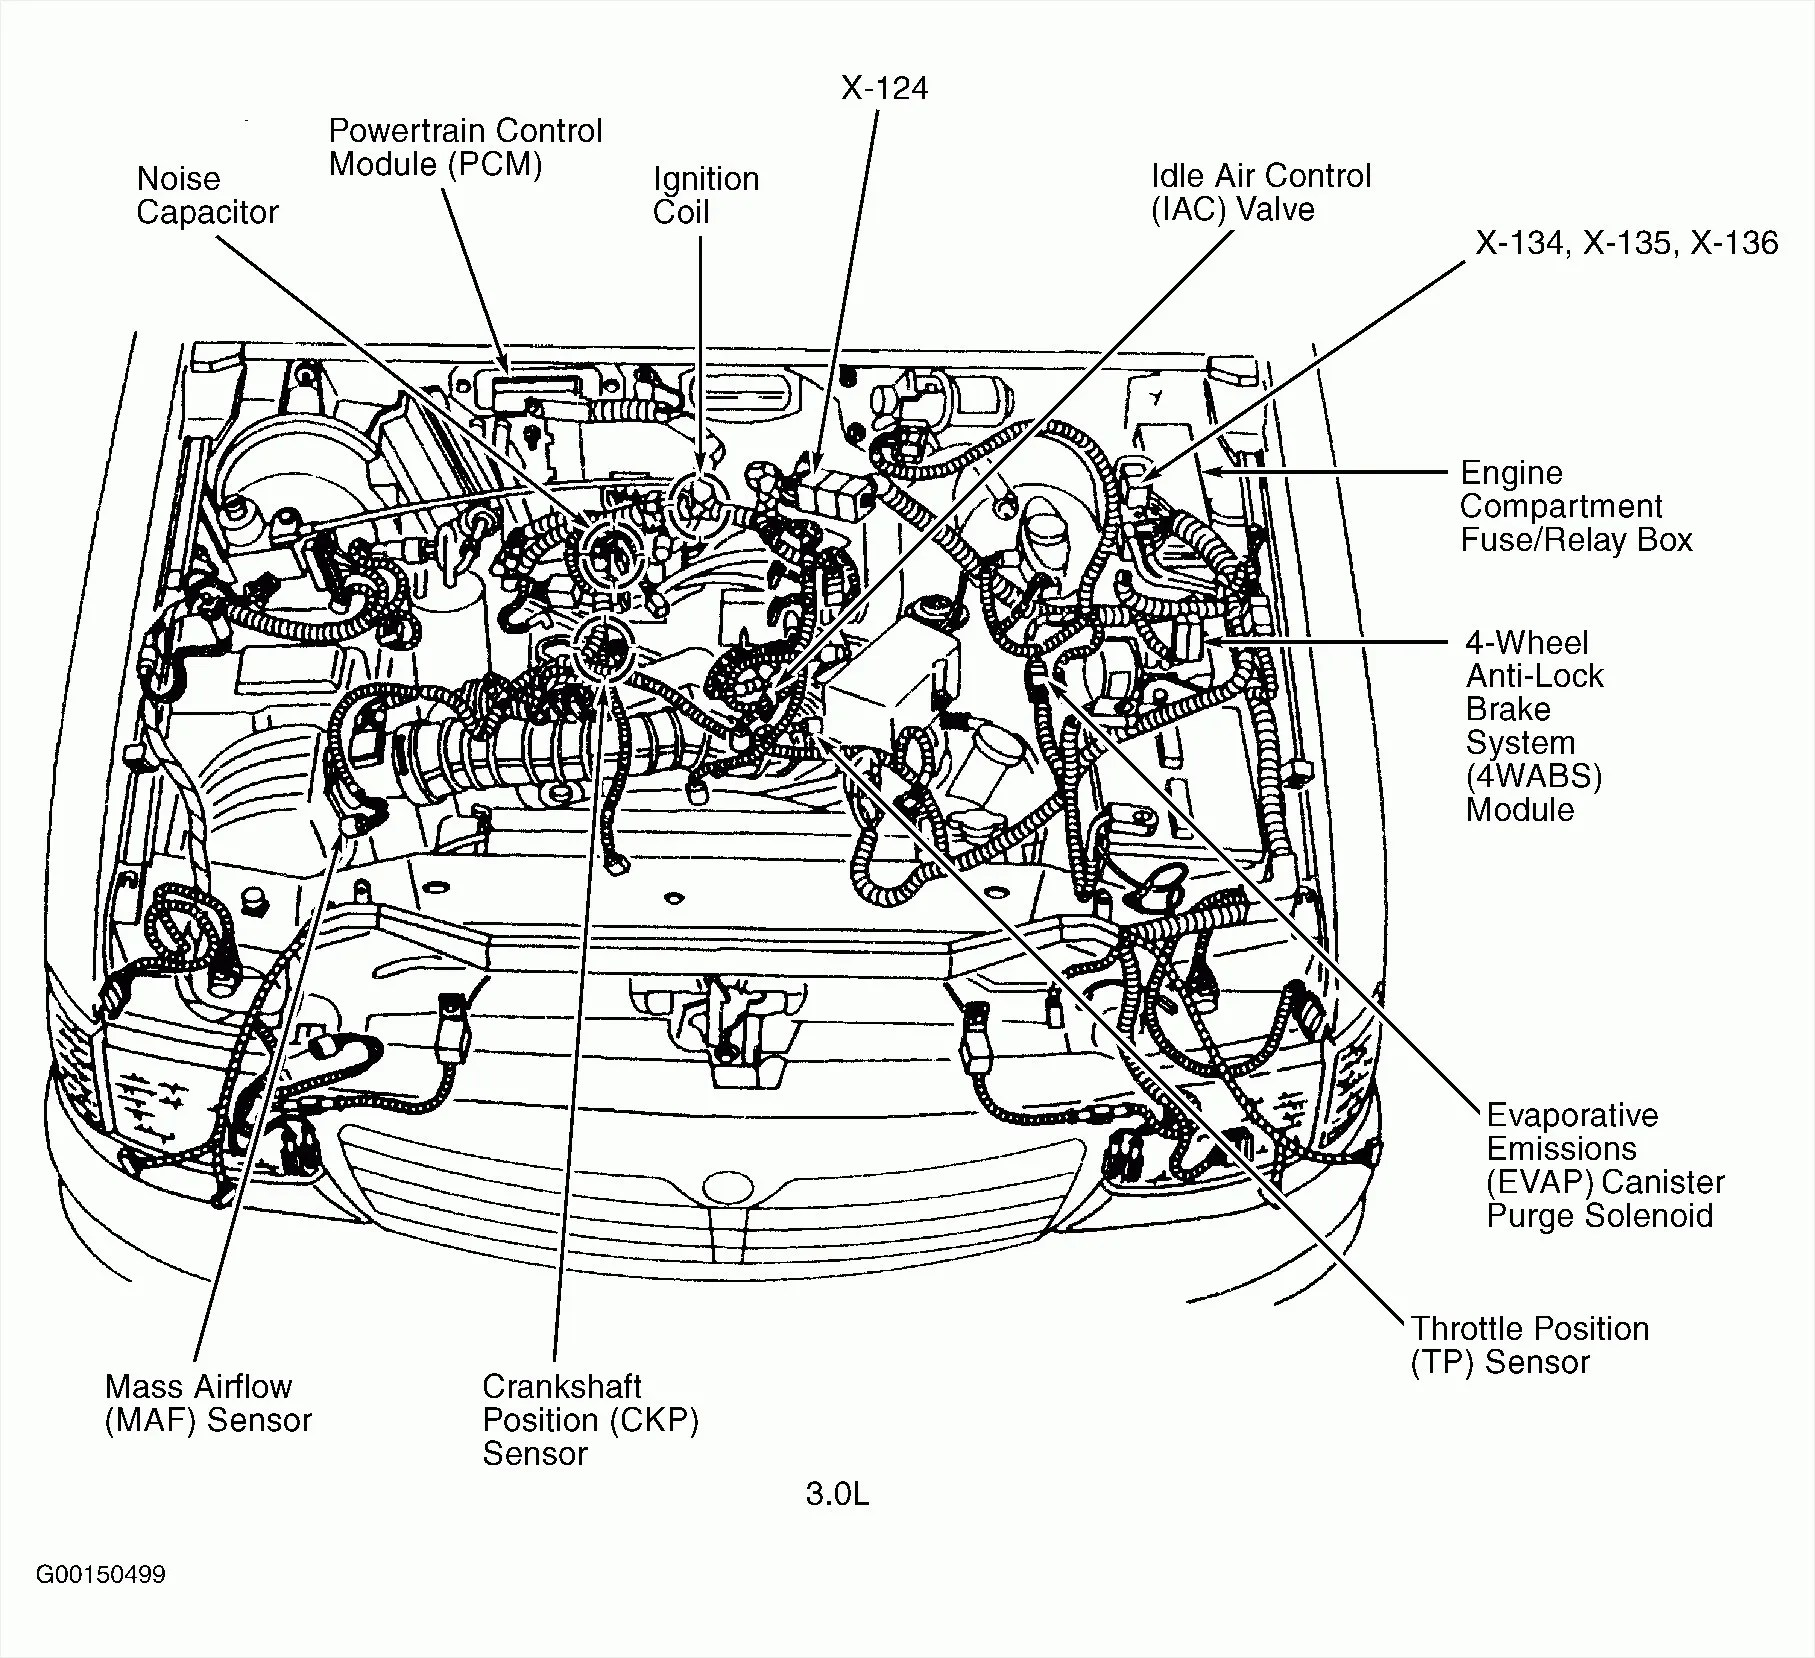 hight resolution of ford f 150 serpentine belt diagram besides 2006 ford f 150 serpentine belt diagram besides ford ranger serpentine belt diagram in